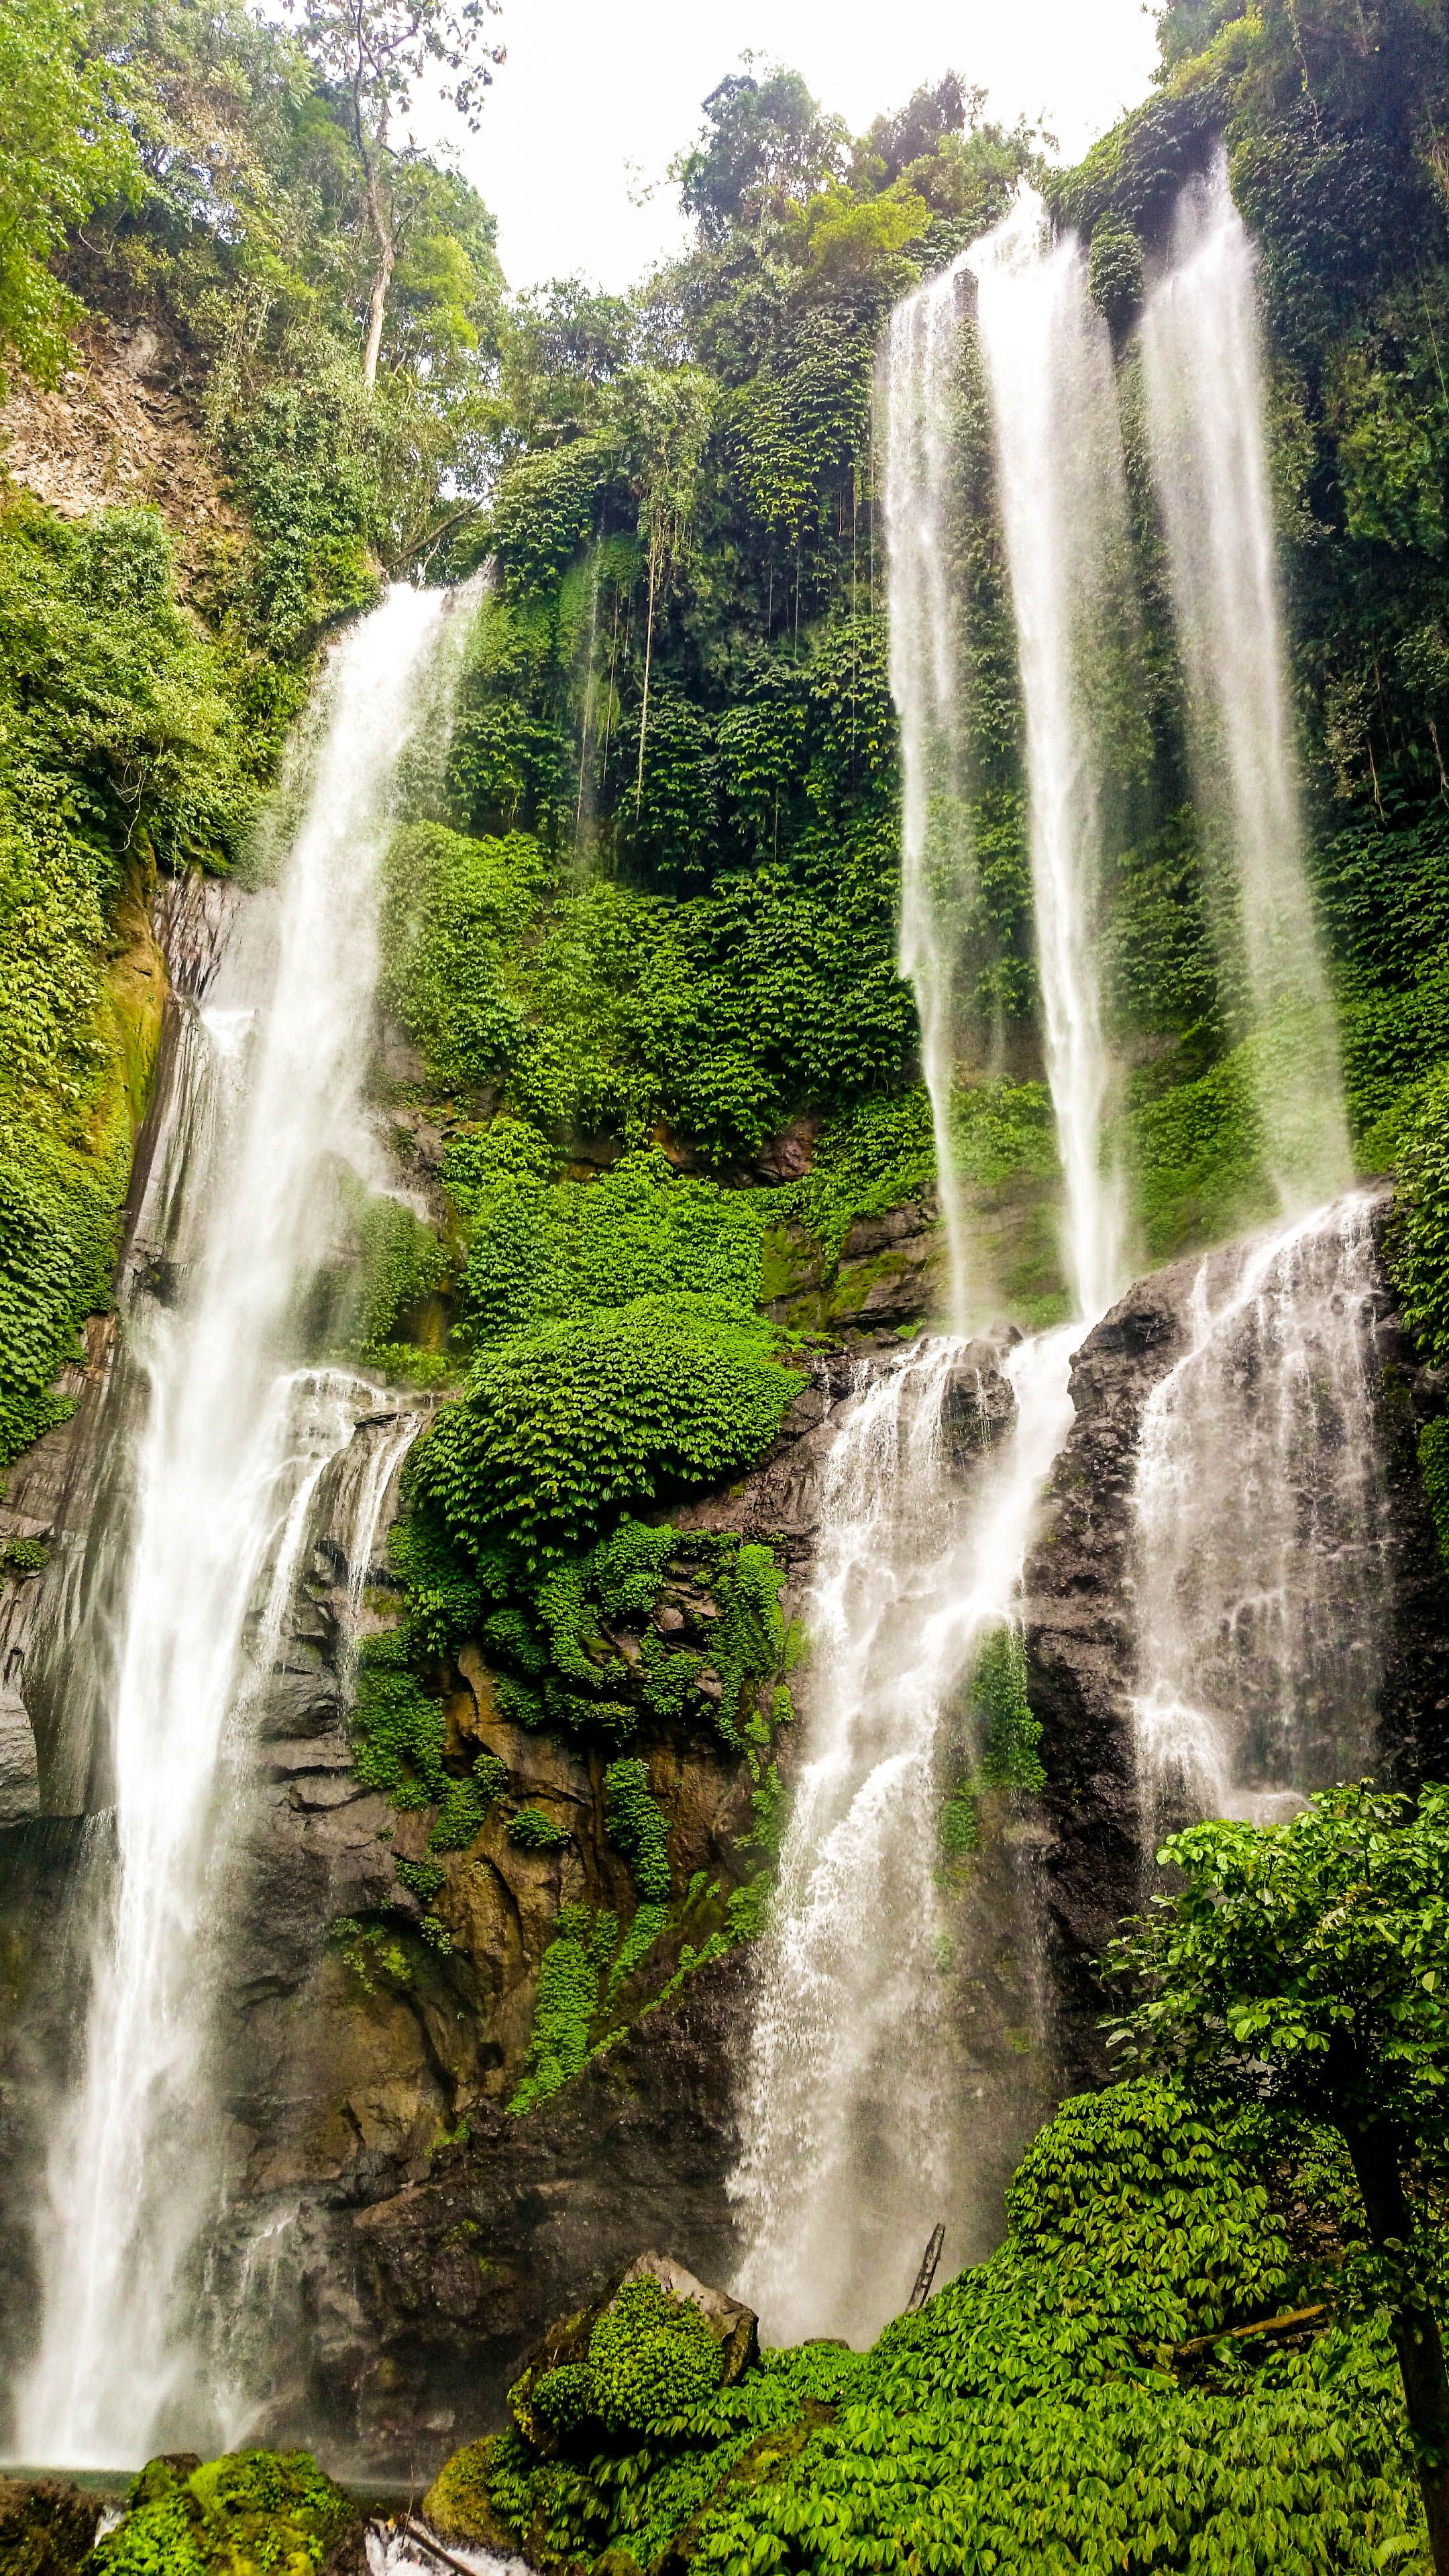 """Sekumpul Waterfall, Bali. Indonesia. While Gitgit is the most visited waterfall in Bali and Aling-Aling is the most fun waterfall, the Sekumpul waterfalls are often considered the most beautiful in Bali. Sekumpul means """"a group of"""", and there are 7 waterfalls here on the north side of Bali (further east of Lovina) that you can view. The drive is long and it takes a whole day, but you'll barely meet other visitors there and the pure serenity that awaits you is unforgettable!"""